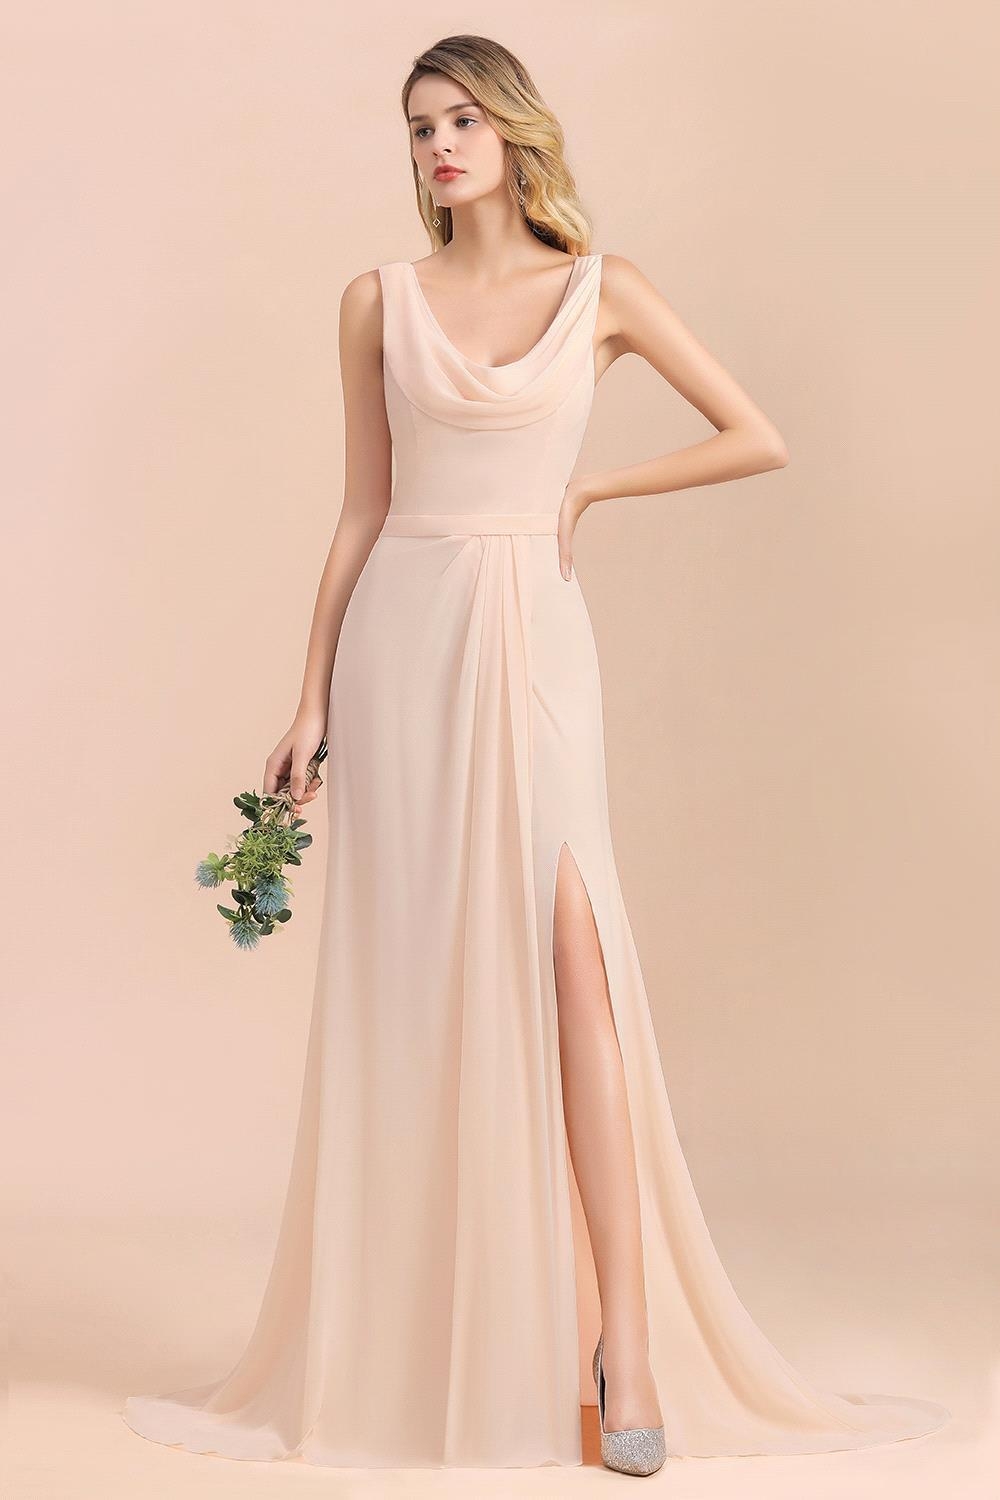 Elegant Sleeveless Chiffon Bridesmaid Dresses Long 2020 Wedding Guest Party Gown High Slit vestido madrinha Custom Made